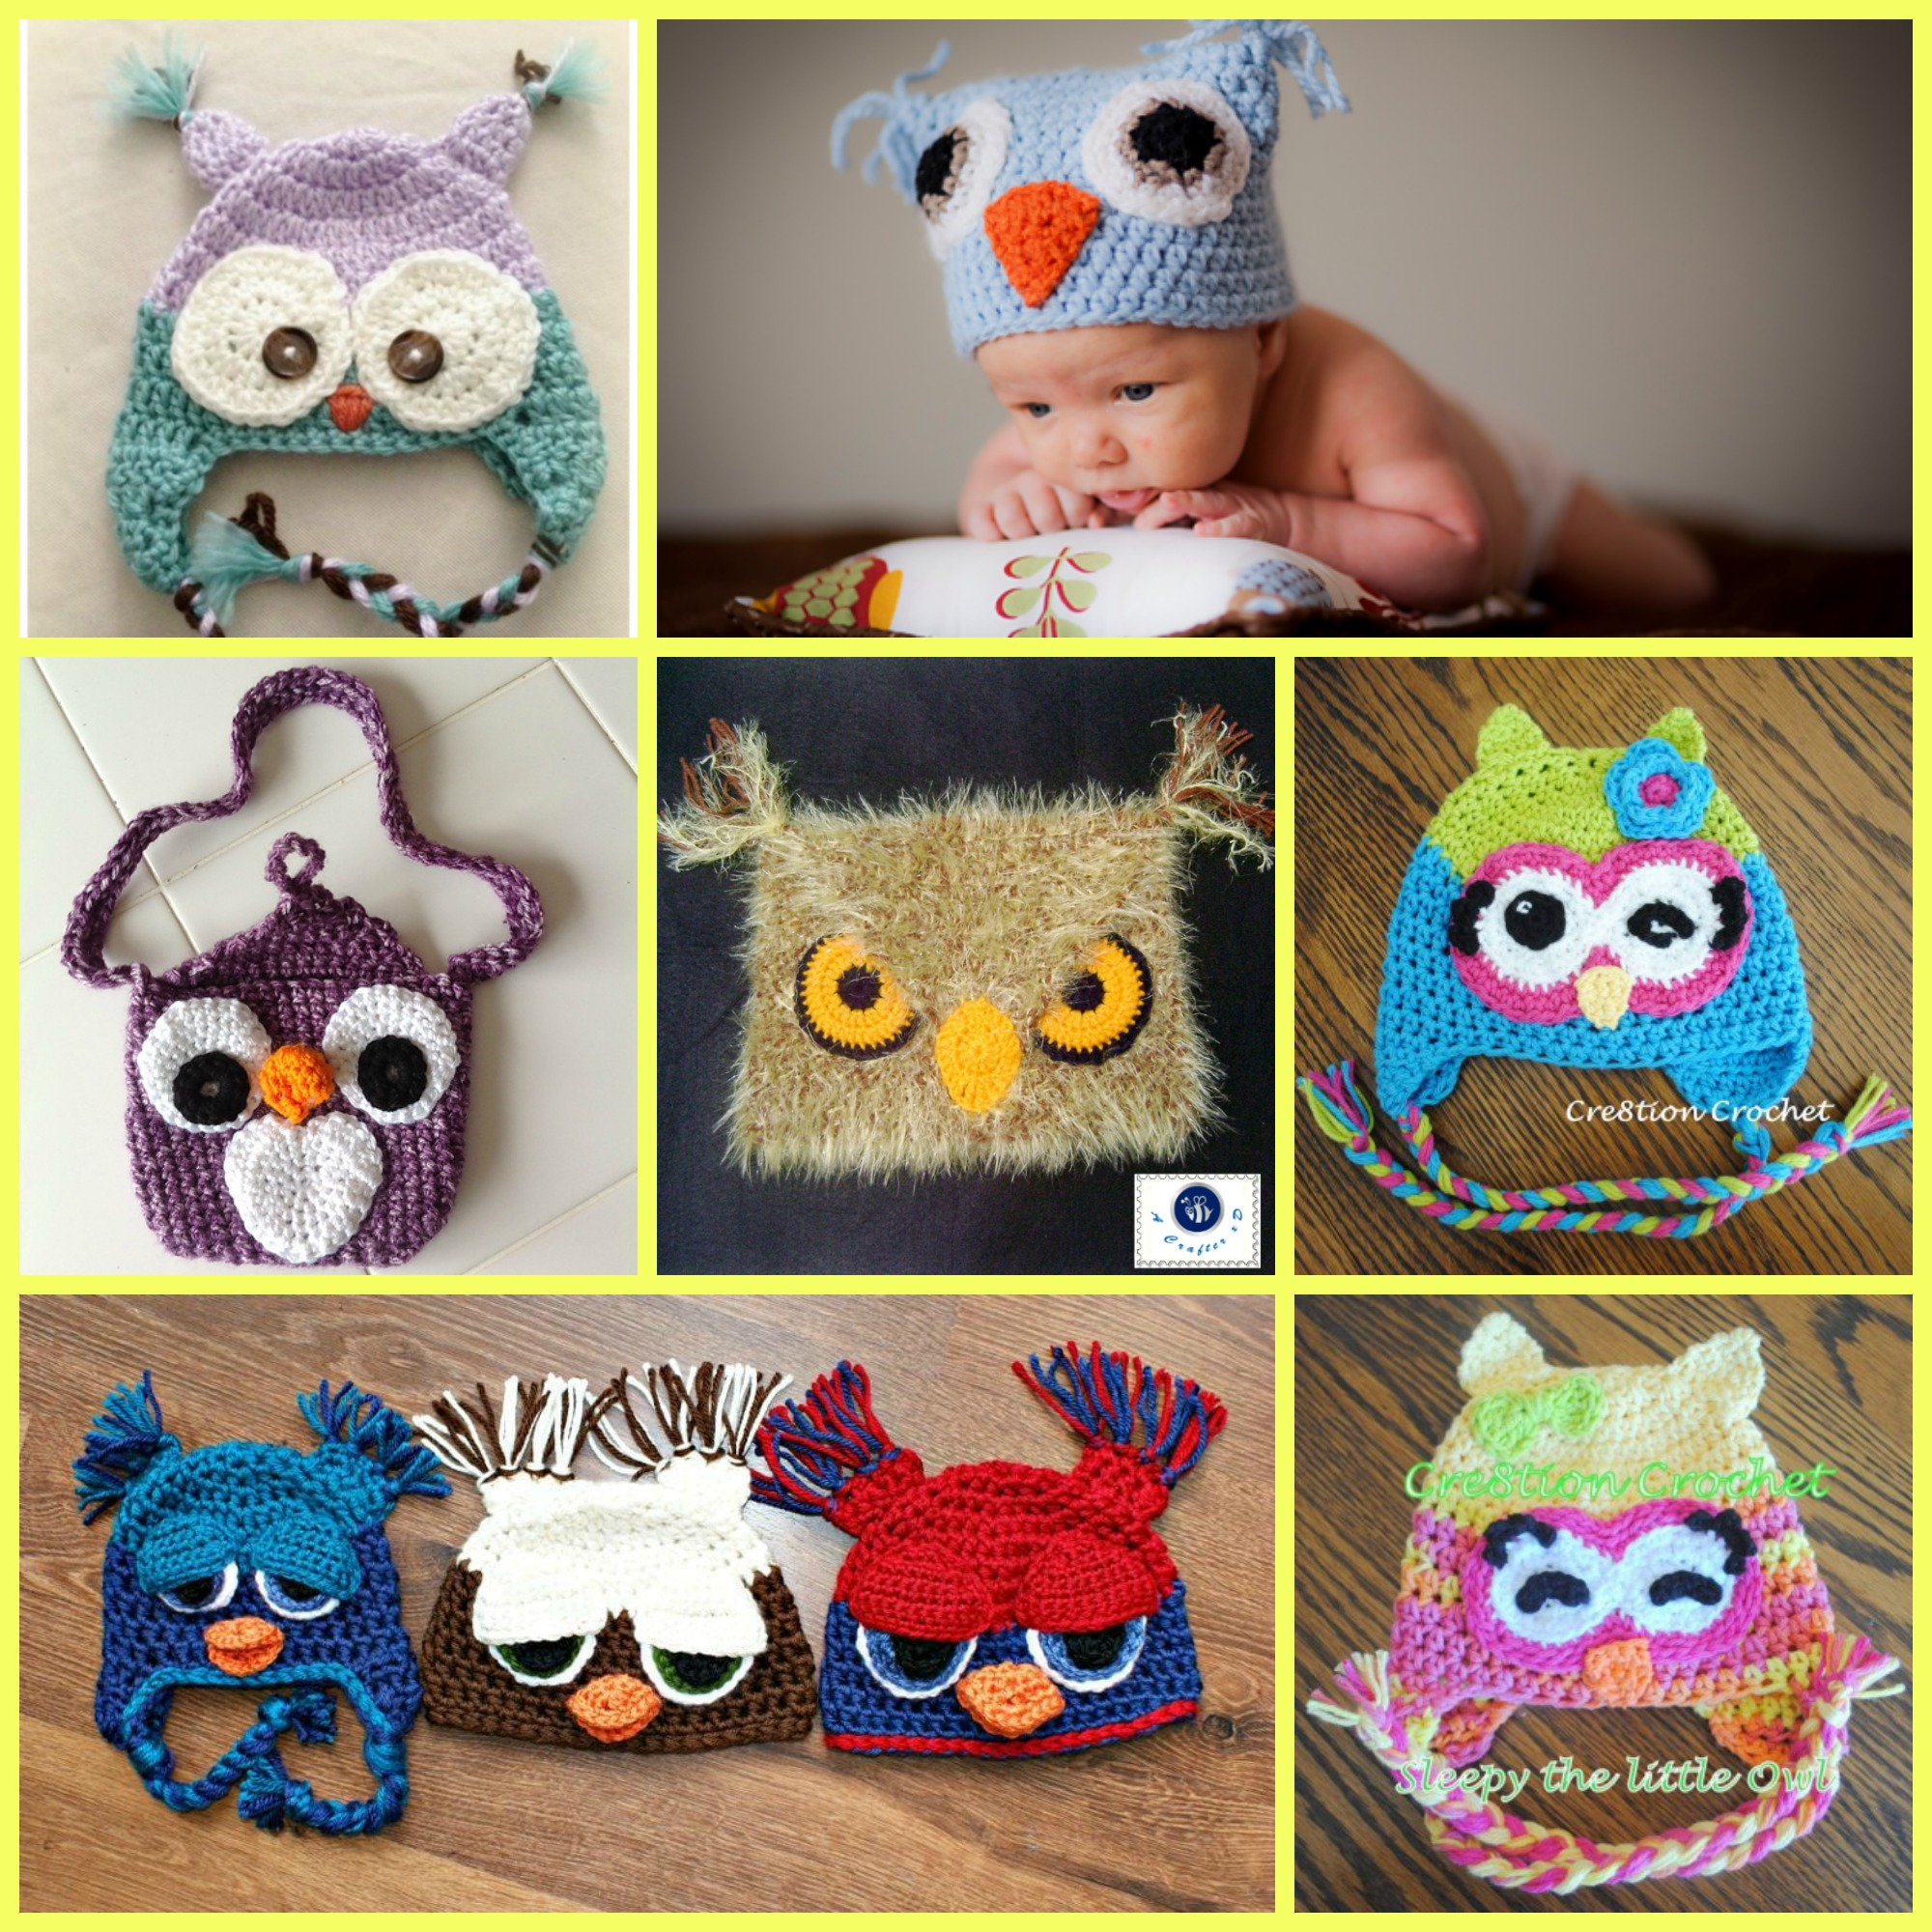 diy4ever-Crochet Cute Owl Hats - Free Patterns